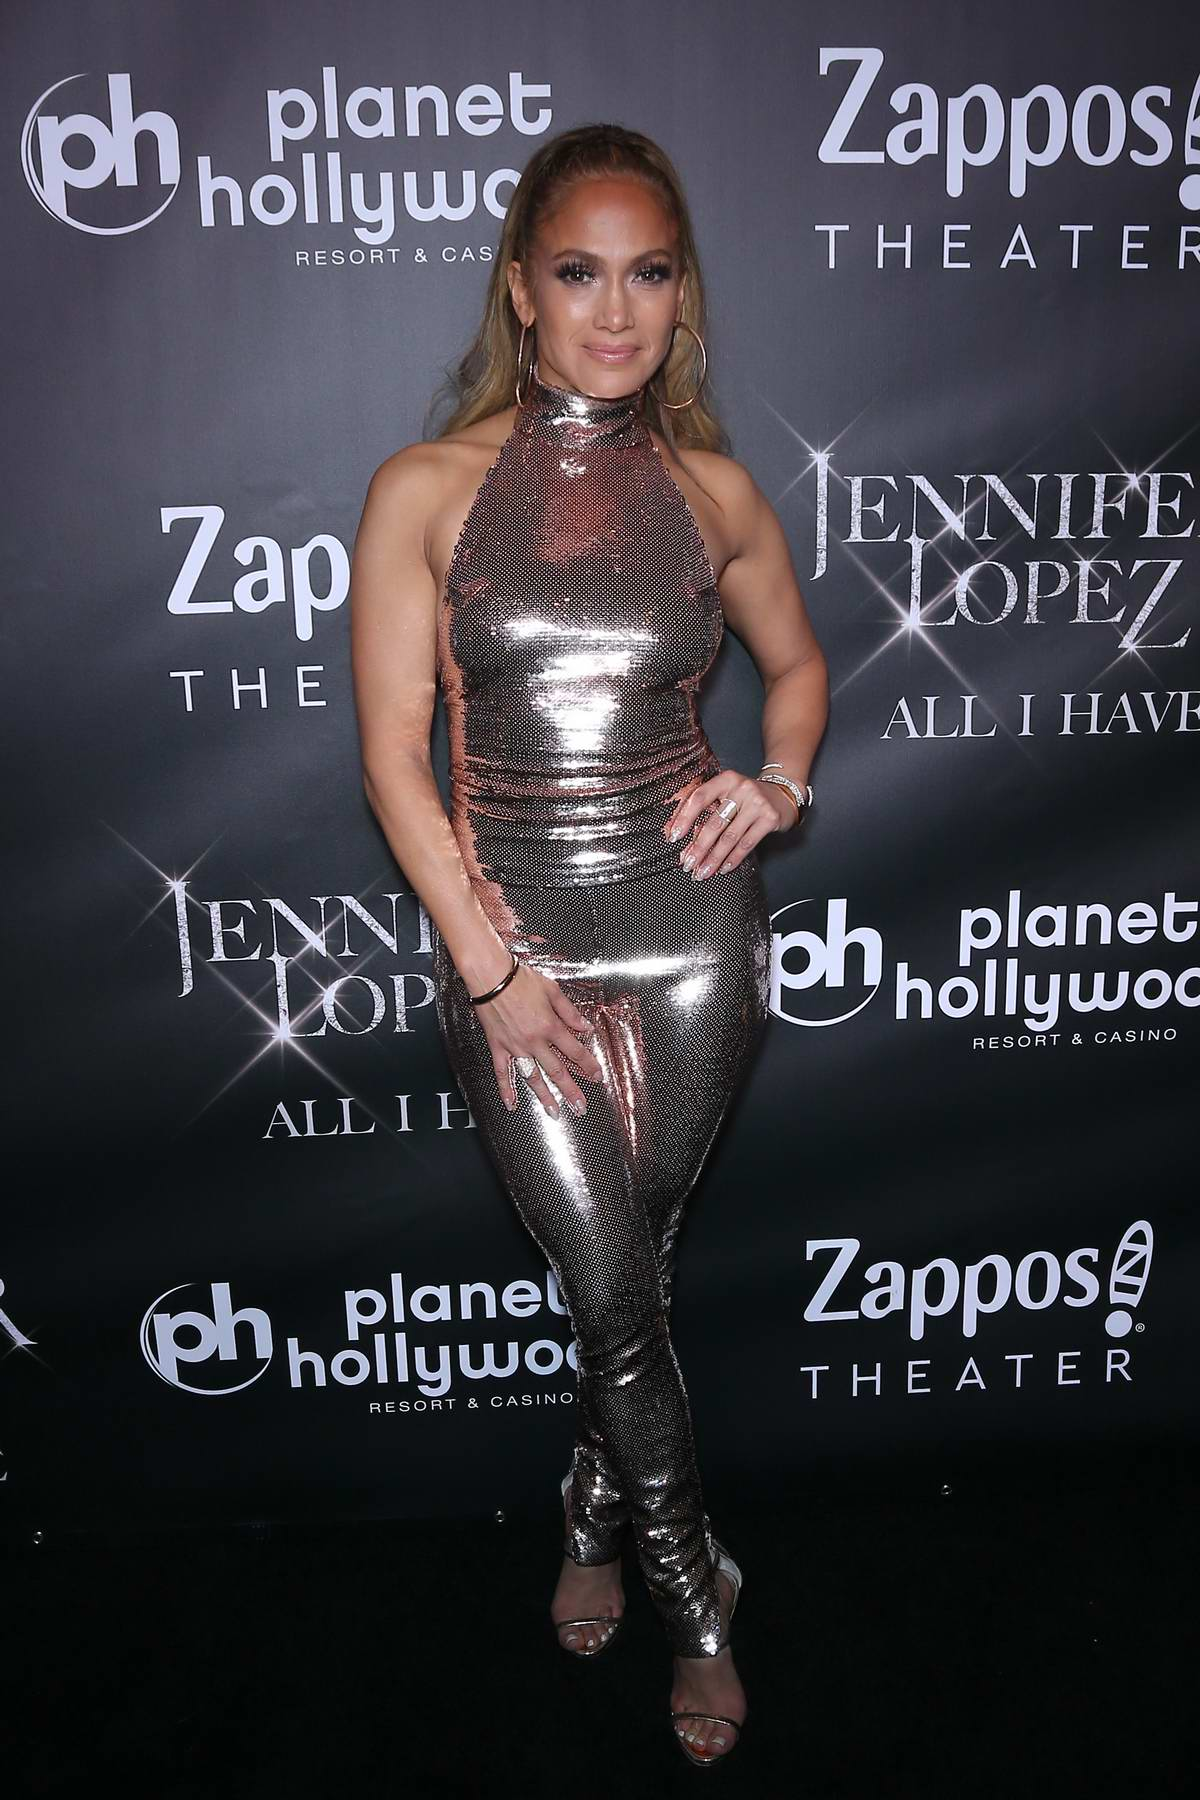 Jennifer Lopez at the after party for the finale of the 'Jennifer Lopez: All I Have' residency in Las Vegas, Nevada